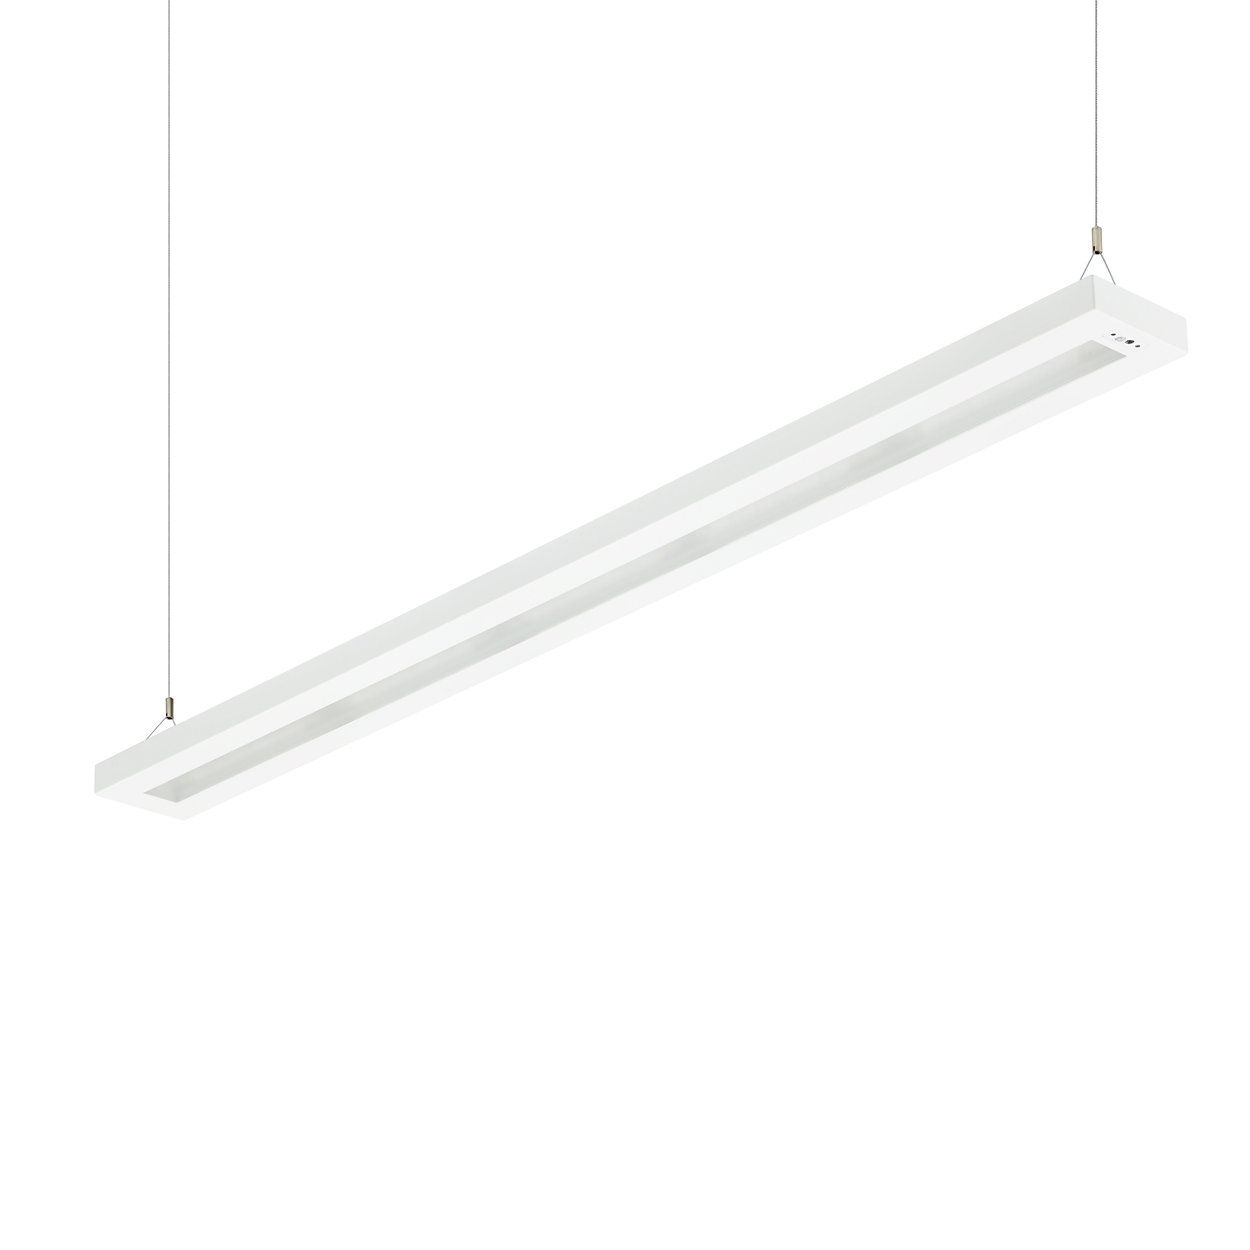 Stylish, office-compliant lighting offering new possibilities